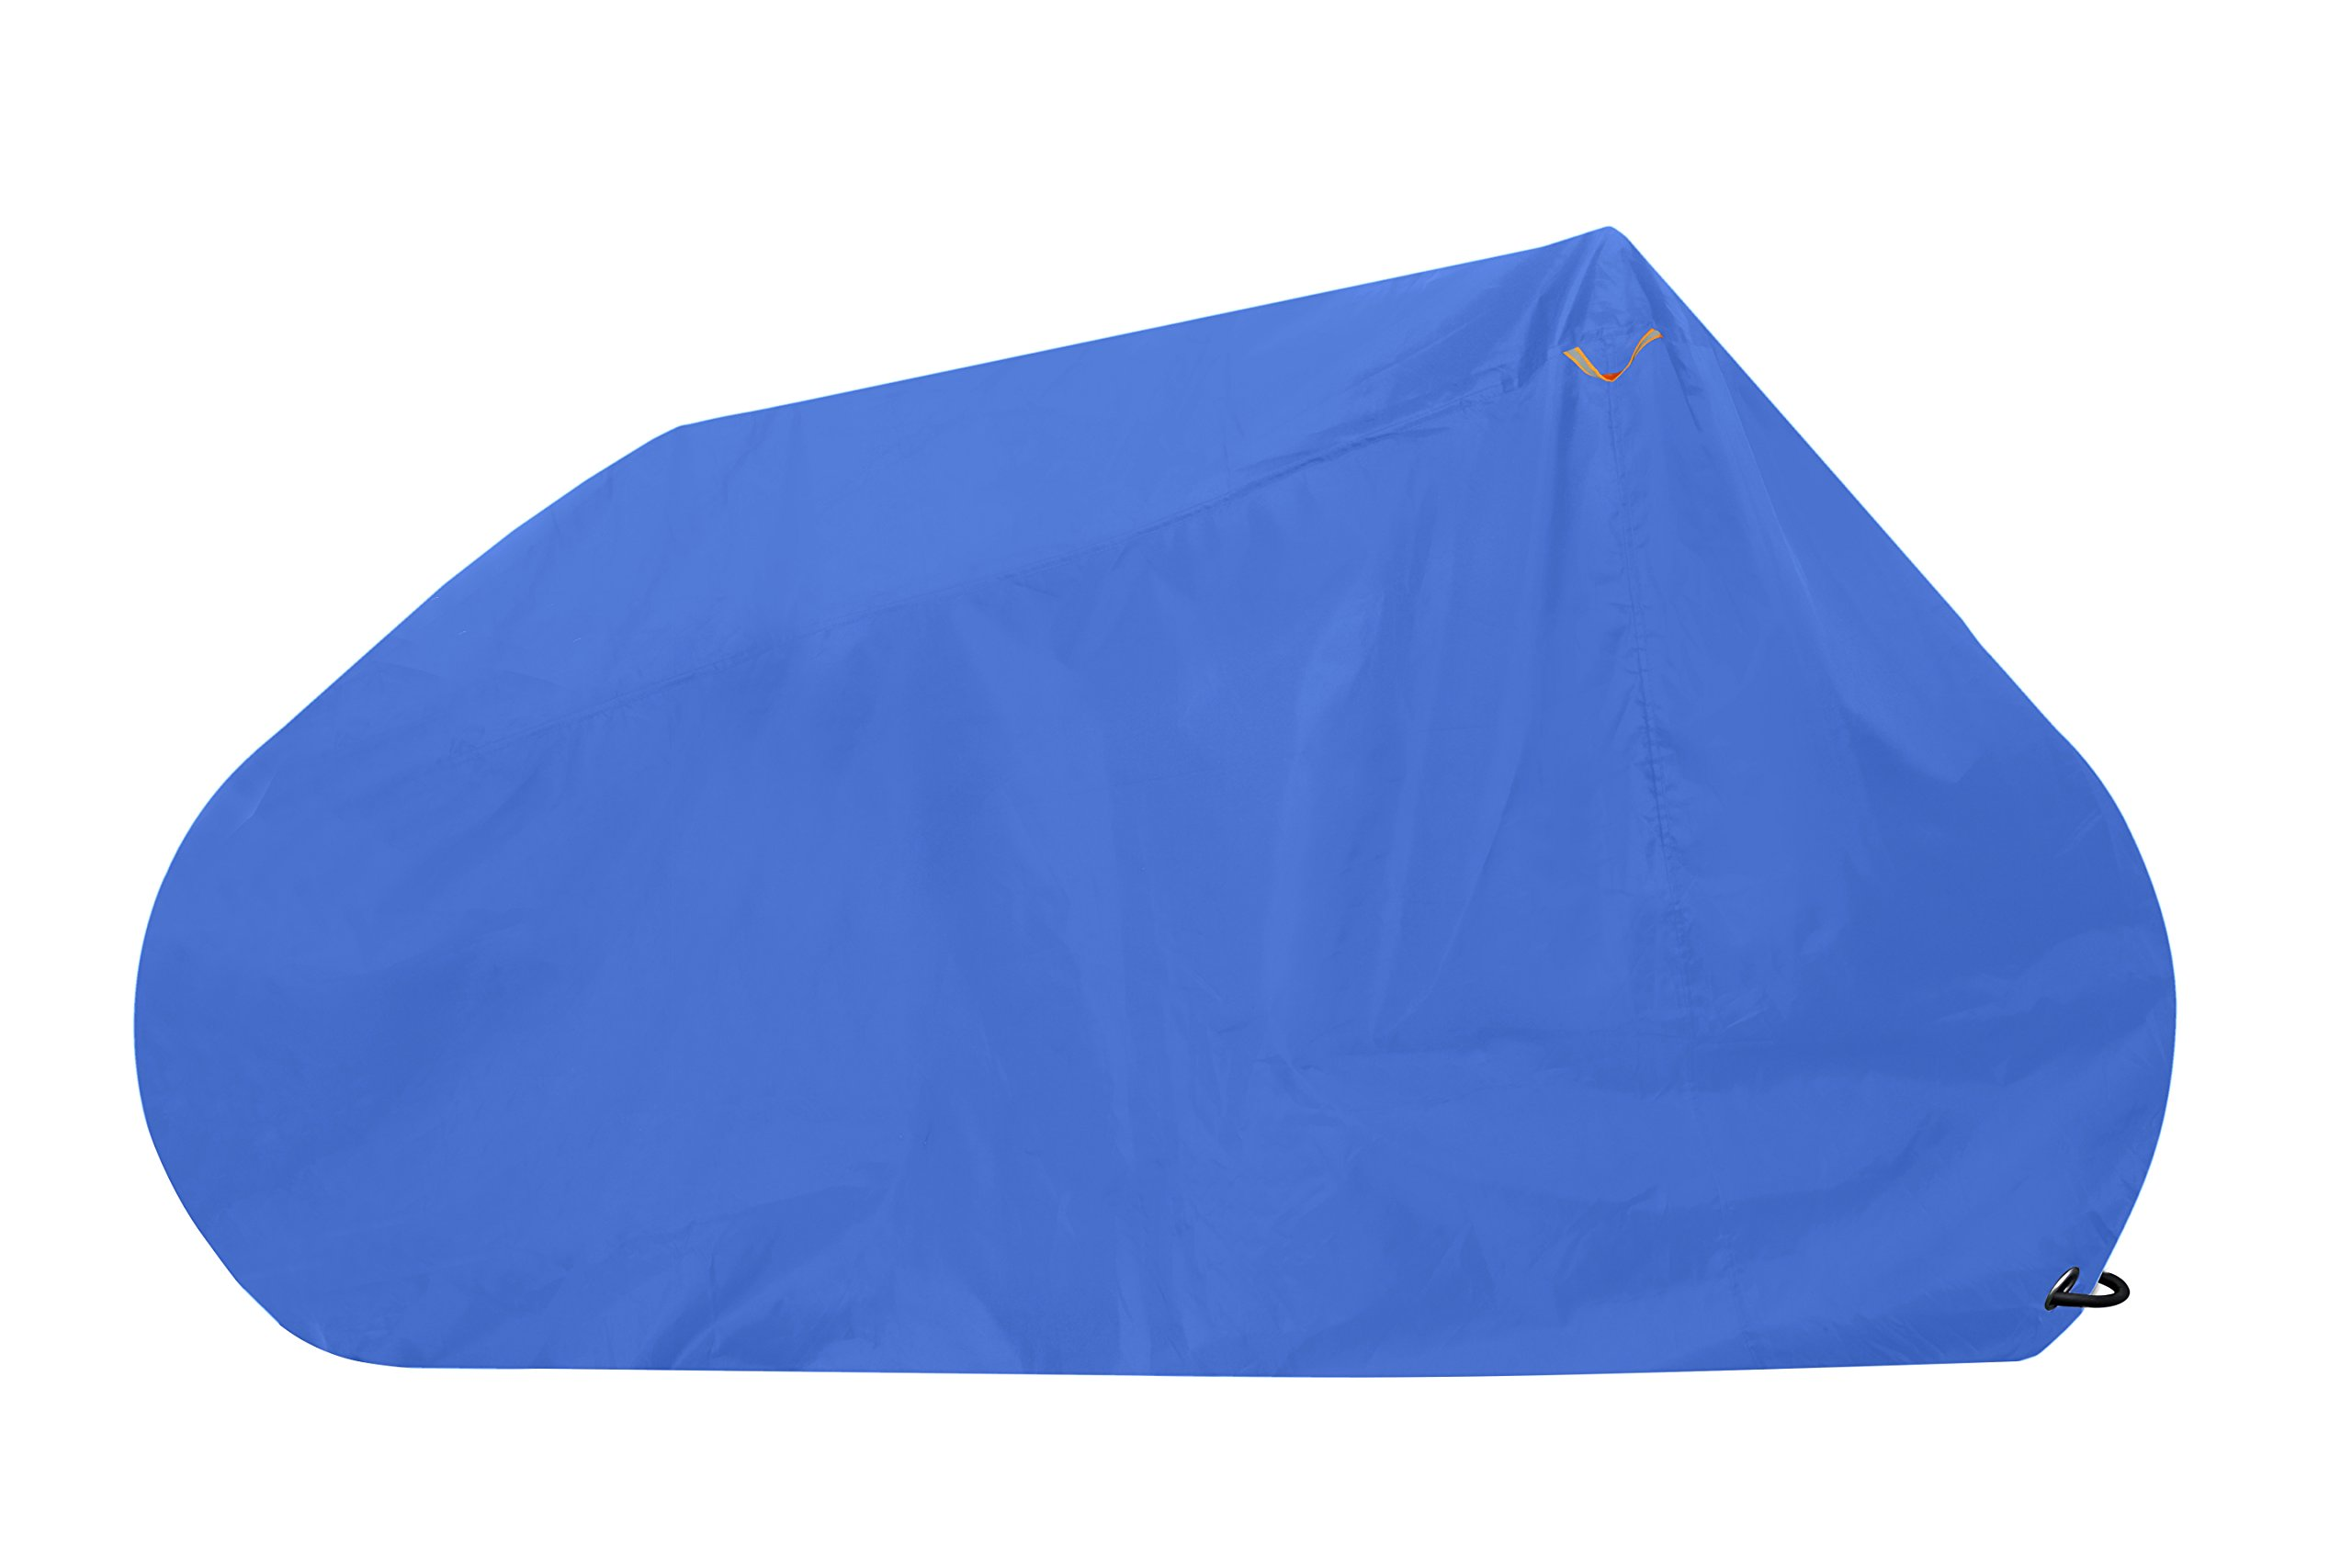 Goose - Bike Cover Waterproof Outdoor - Premium Grade Lockable Bicycle Cover - Heavy Duty Fabric - The Best Protection Available (Blue, Large)